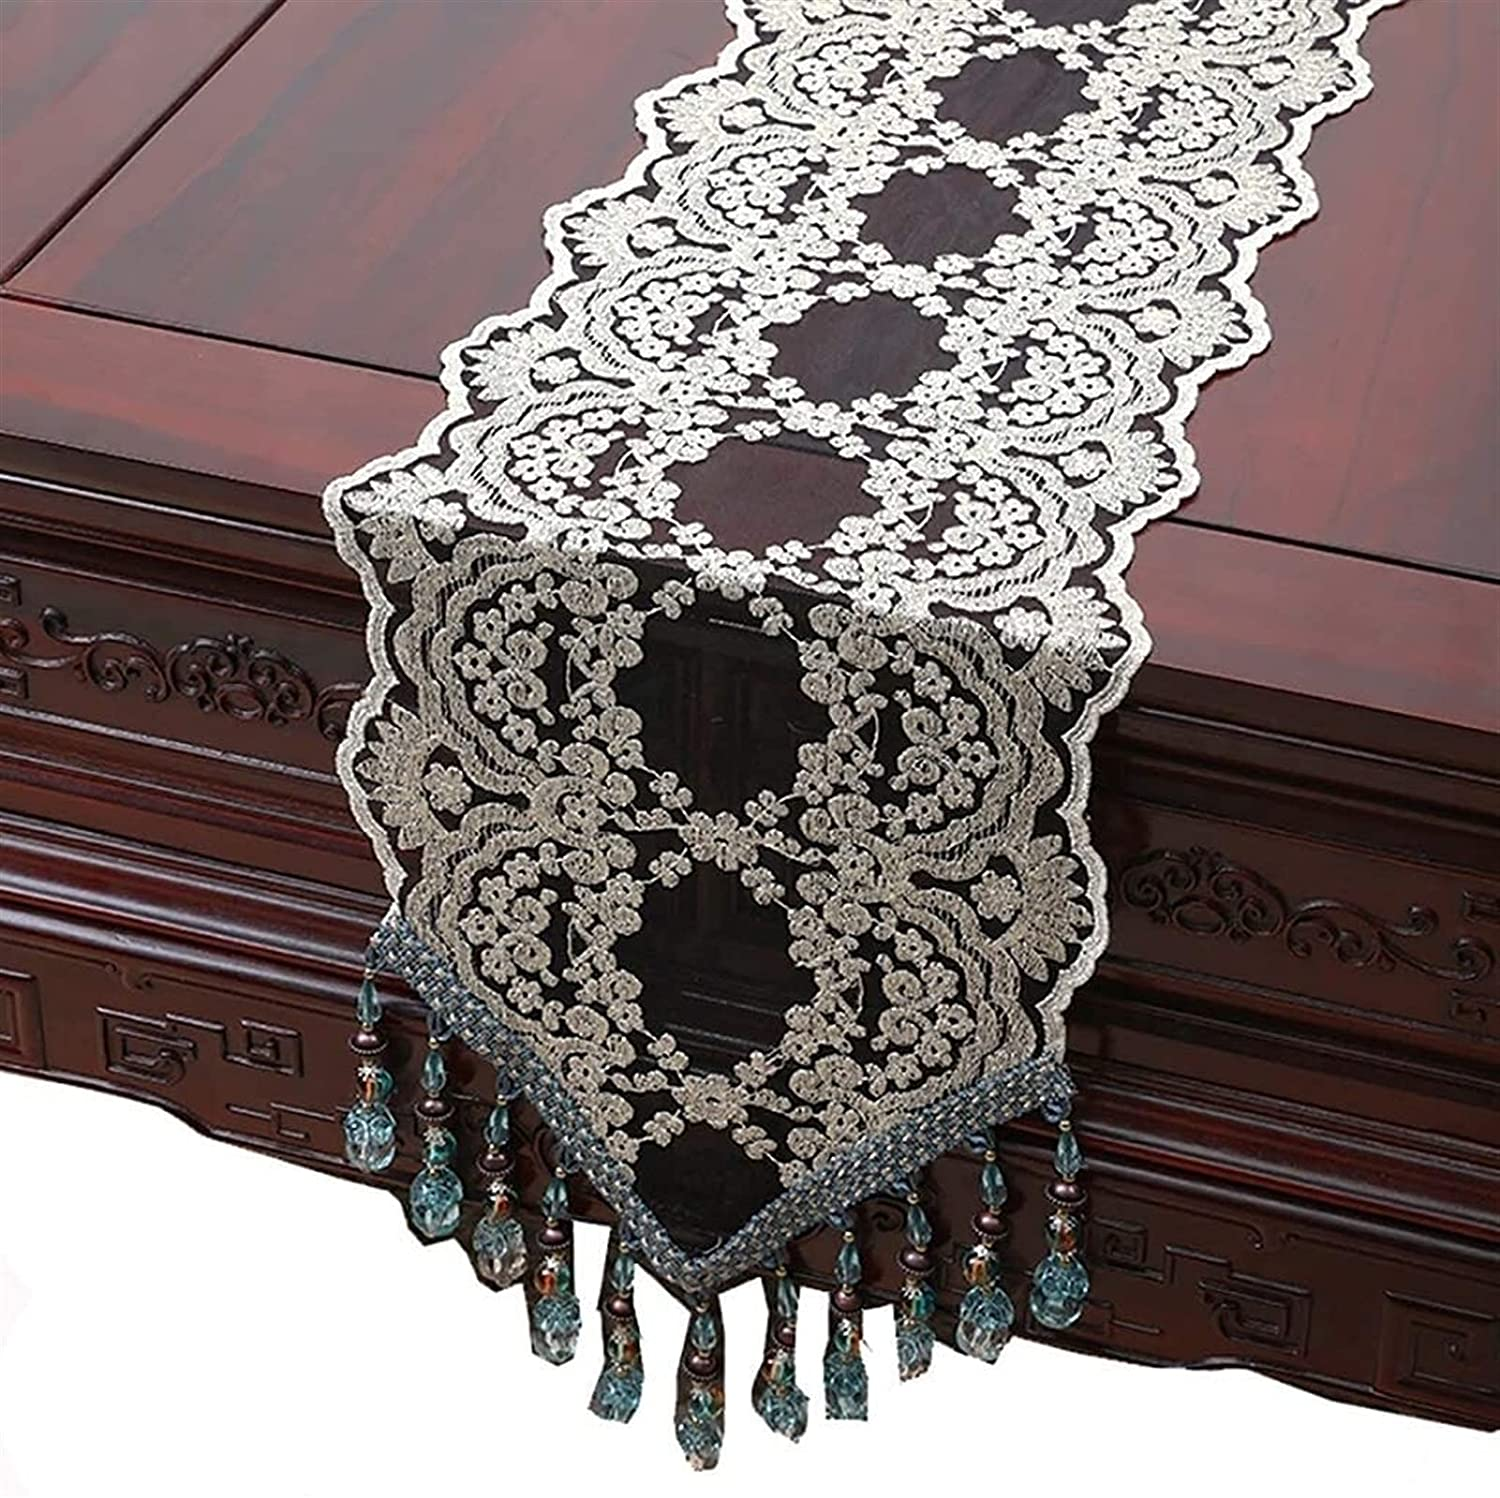 High quality new Shelfon Simple Table Runner Embroidered Lace White Max 69% OFF